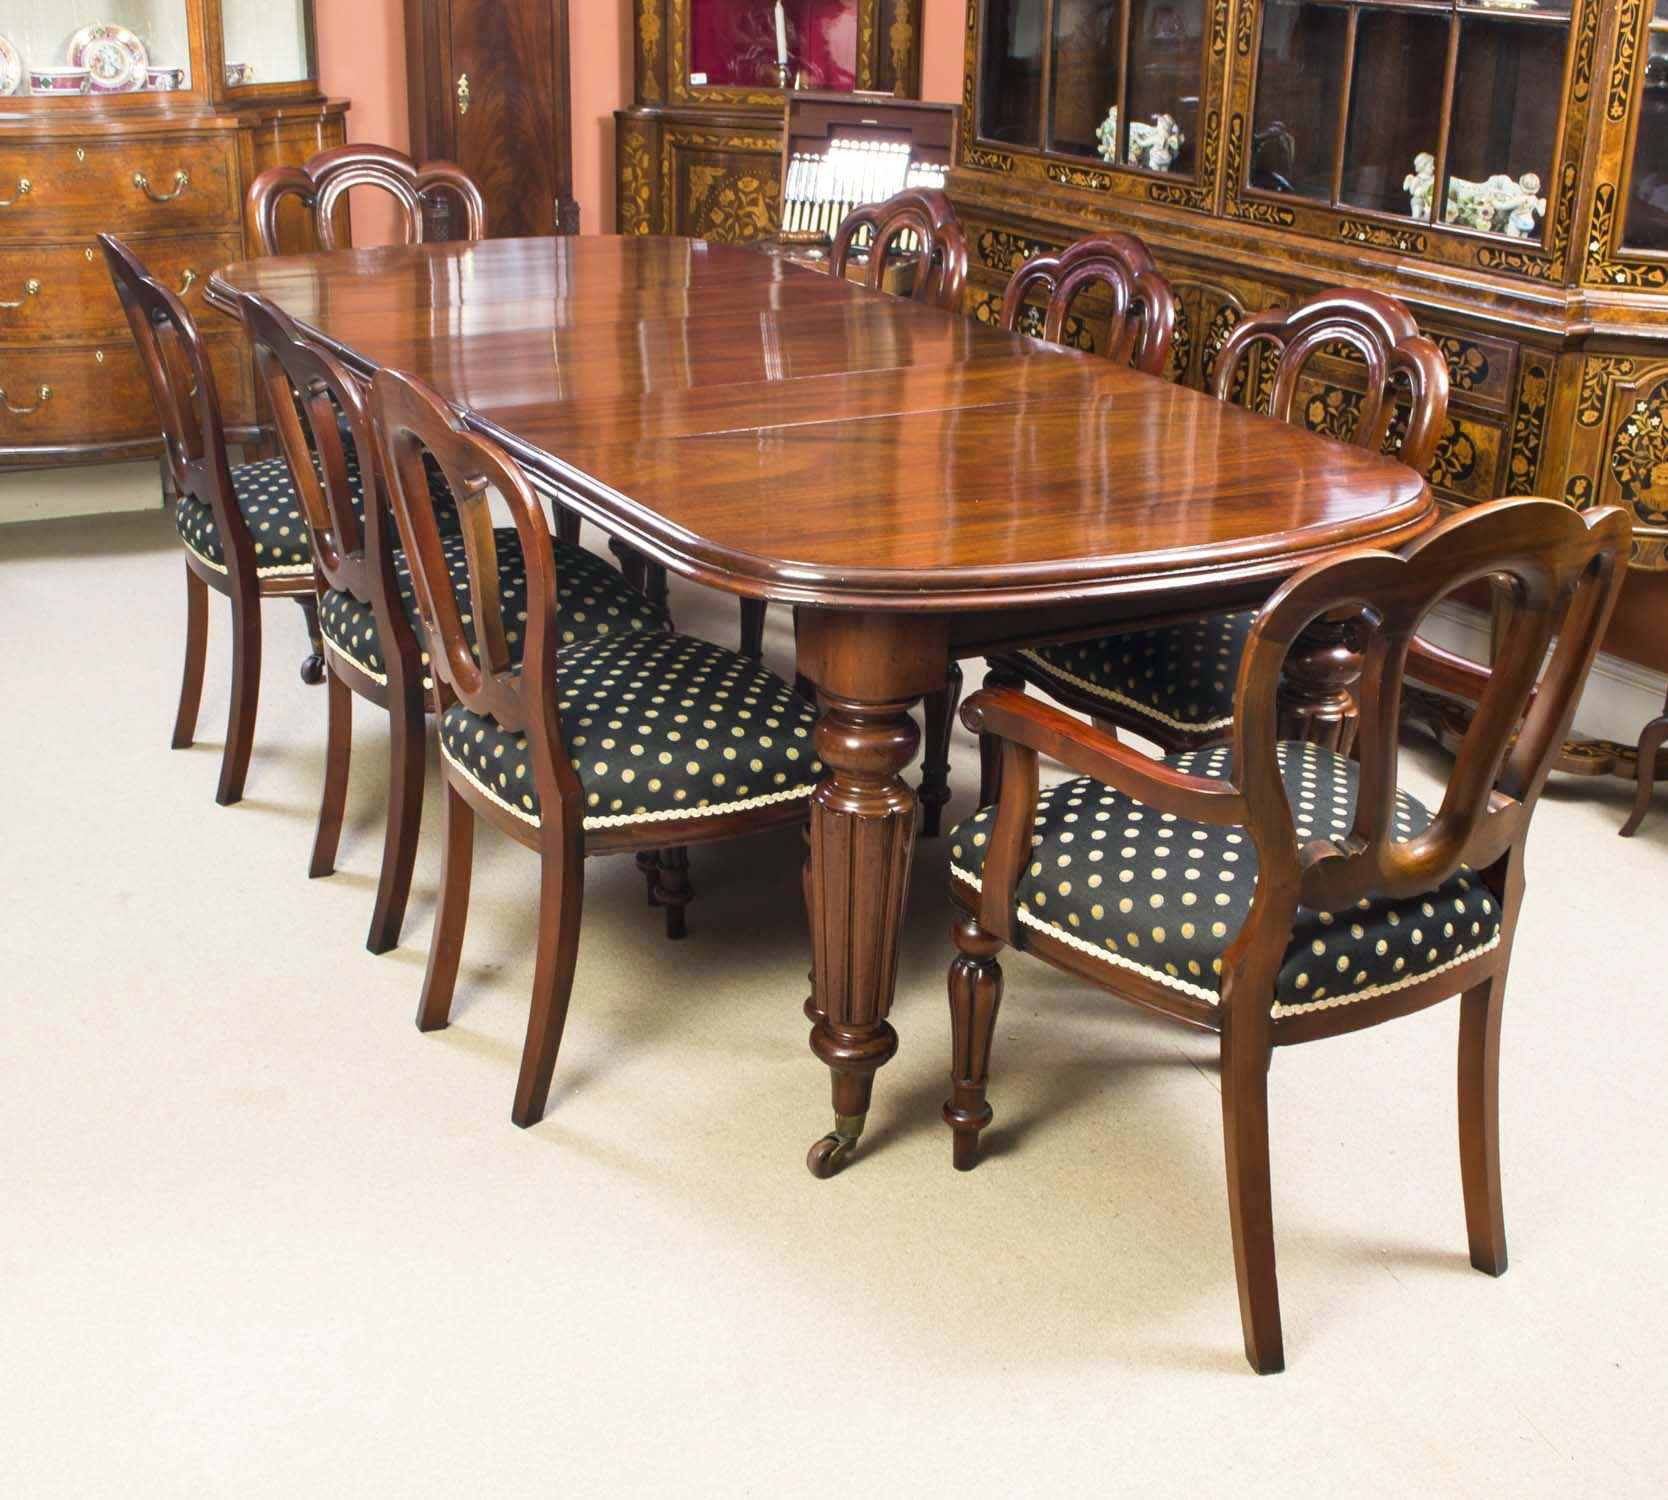 antique victorian mahogany dining table 8 chairs c1870